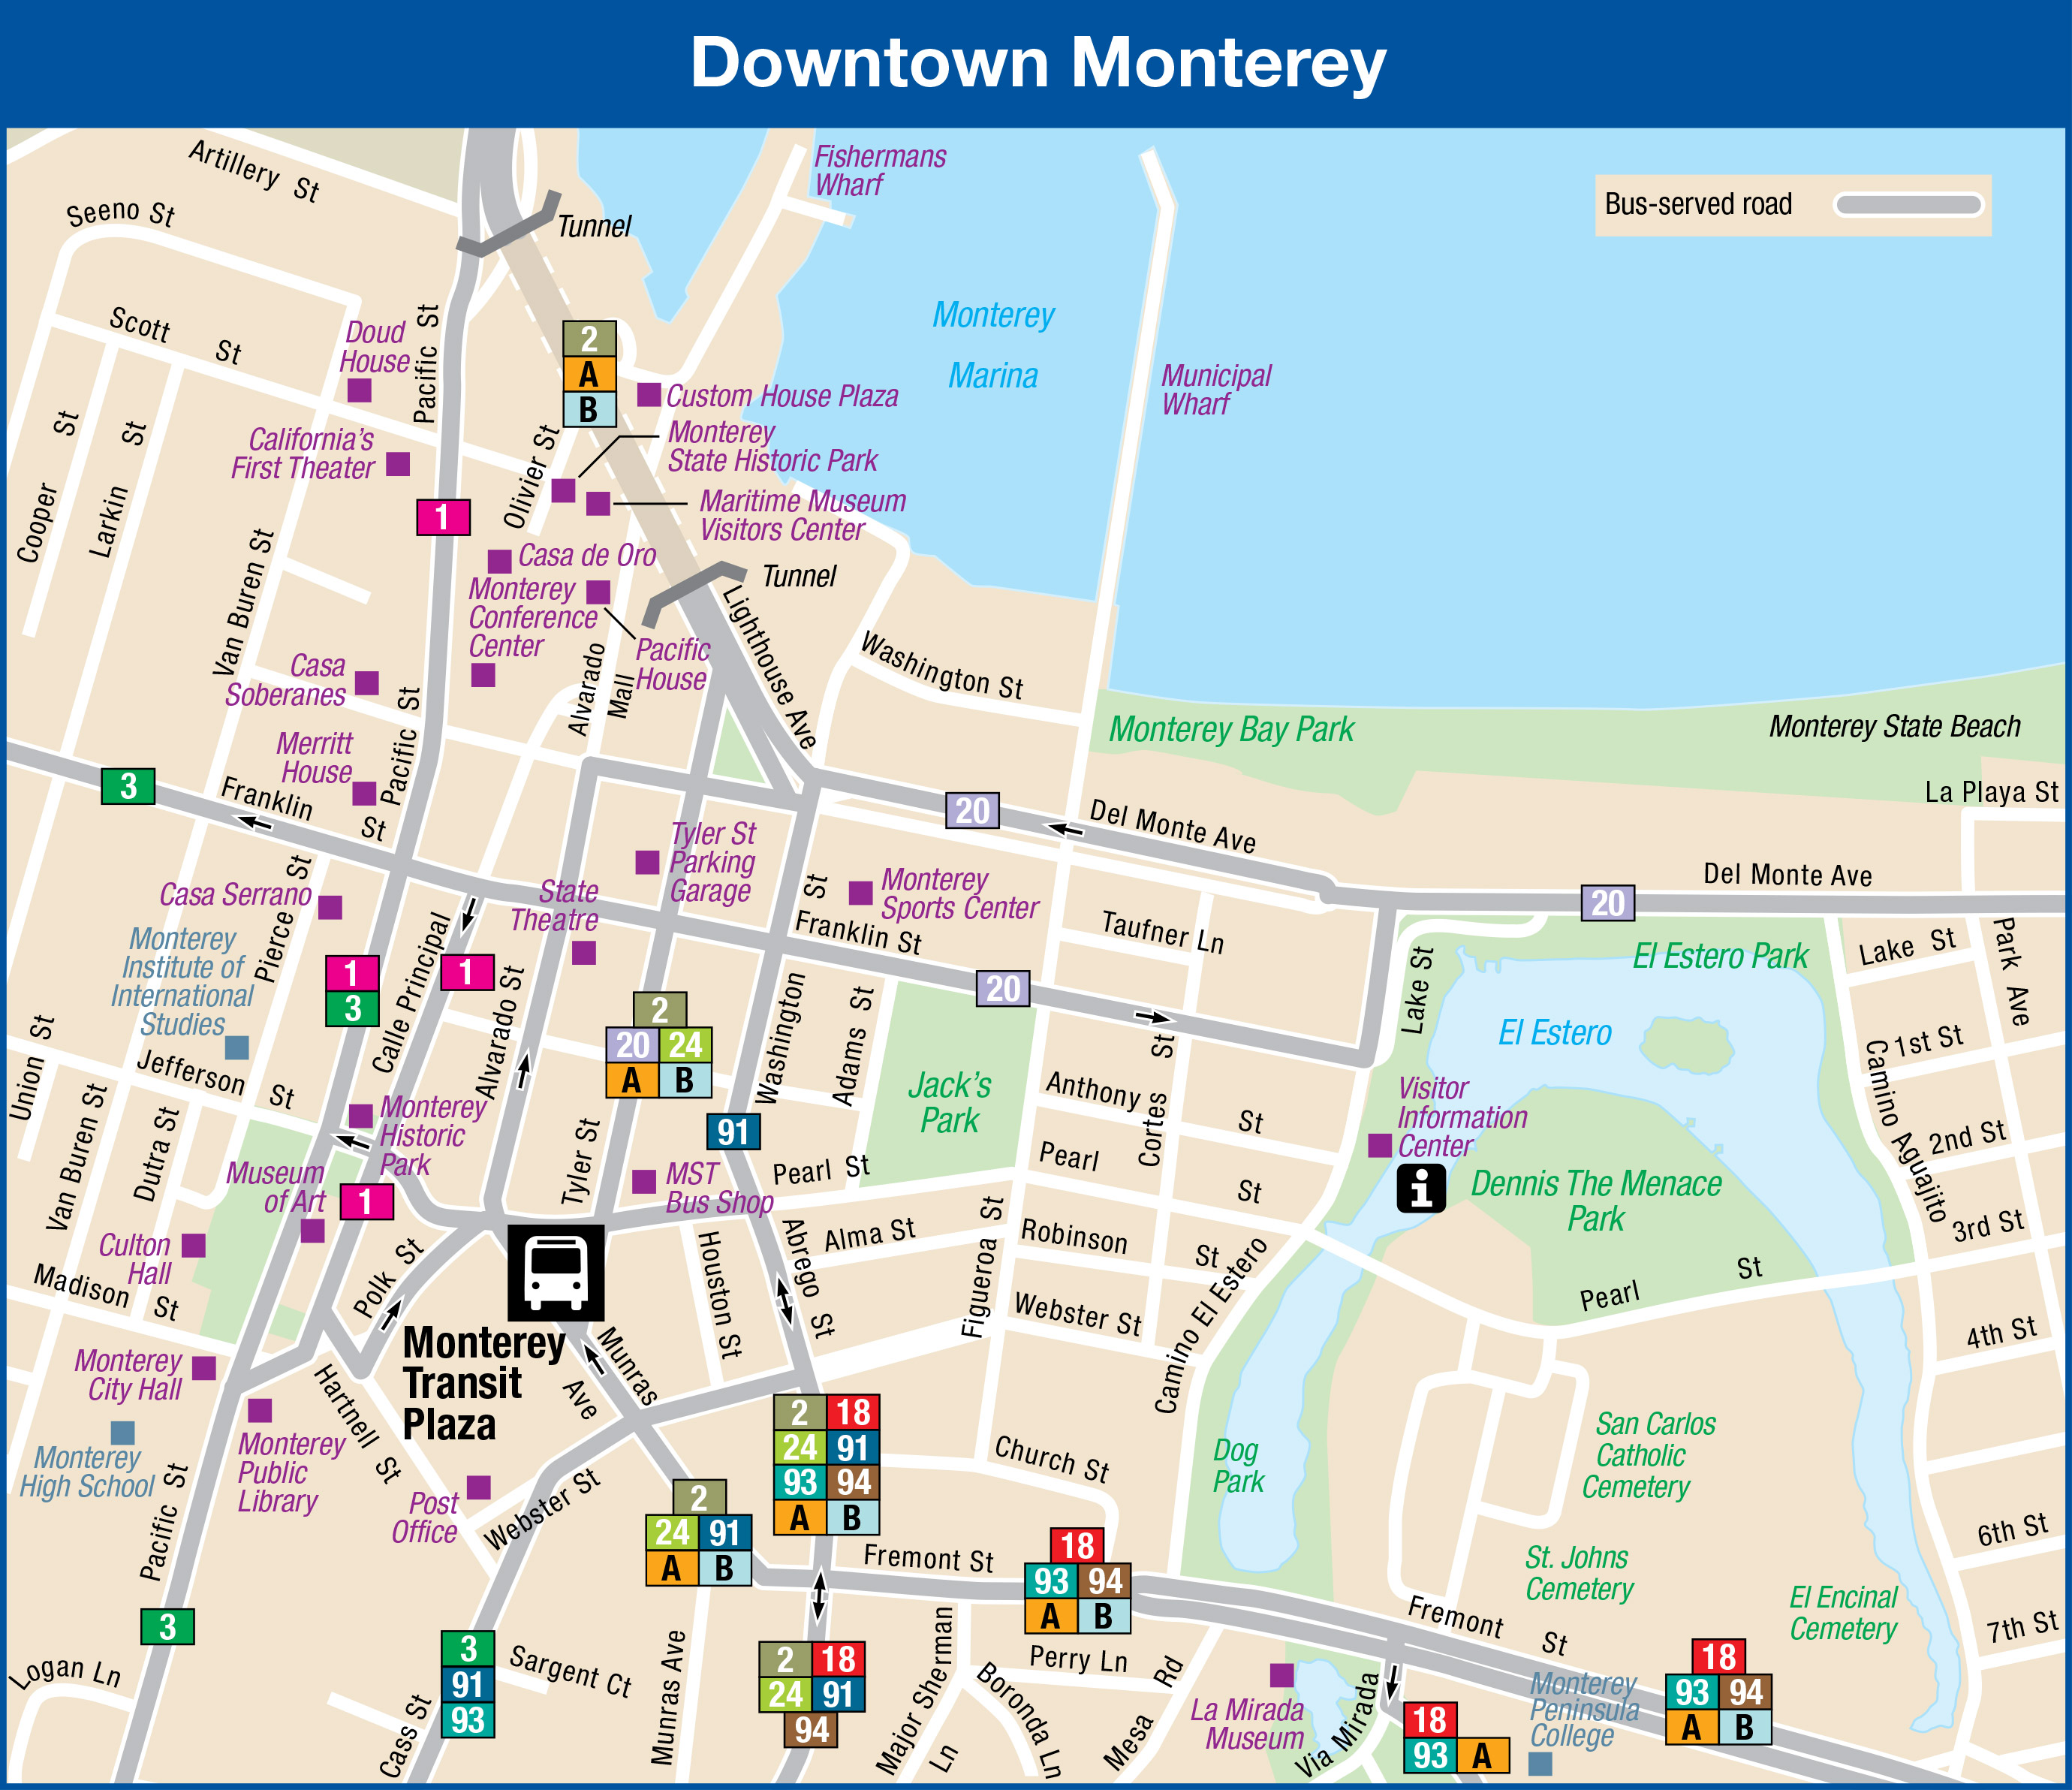 downtown montereyincludes routes that travel through downtown monterey